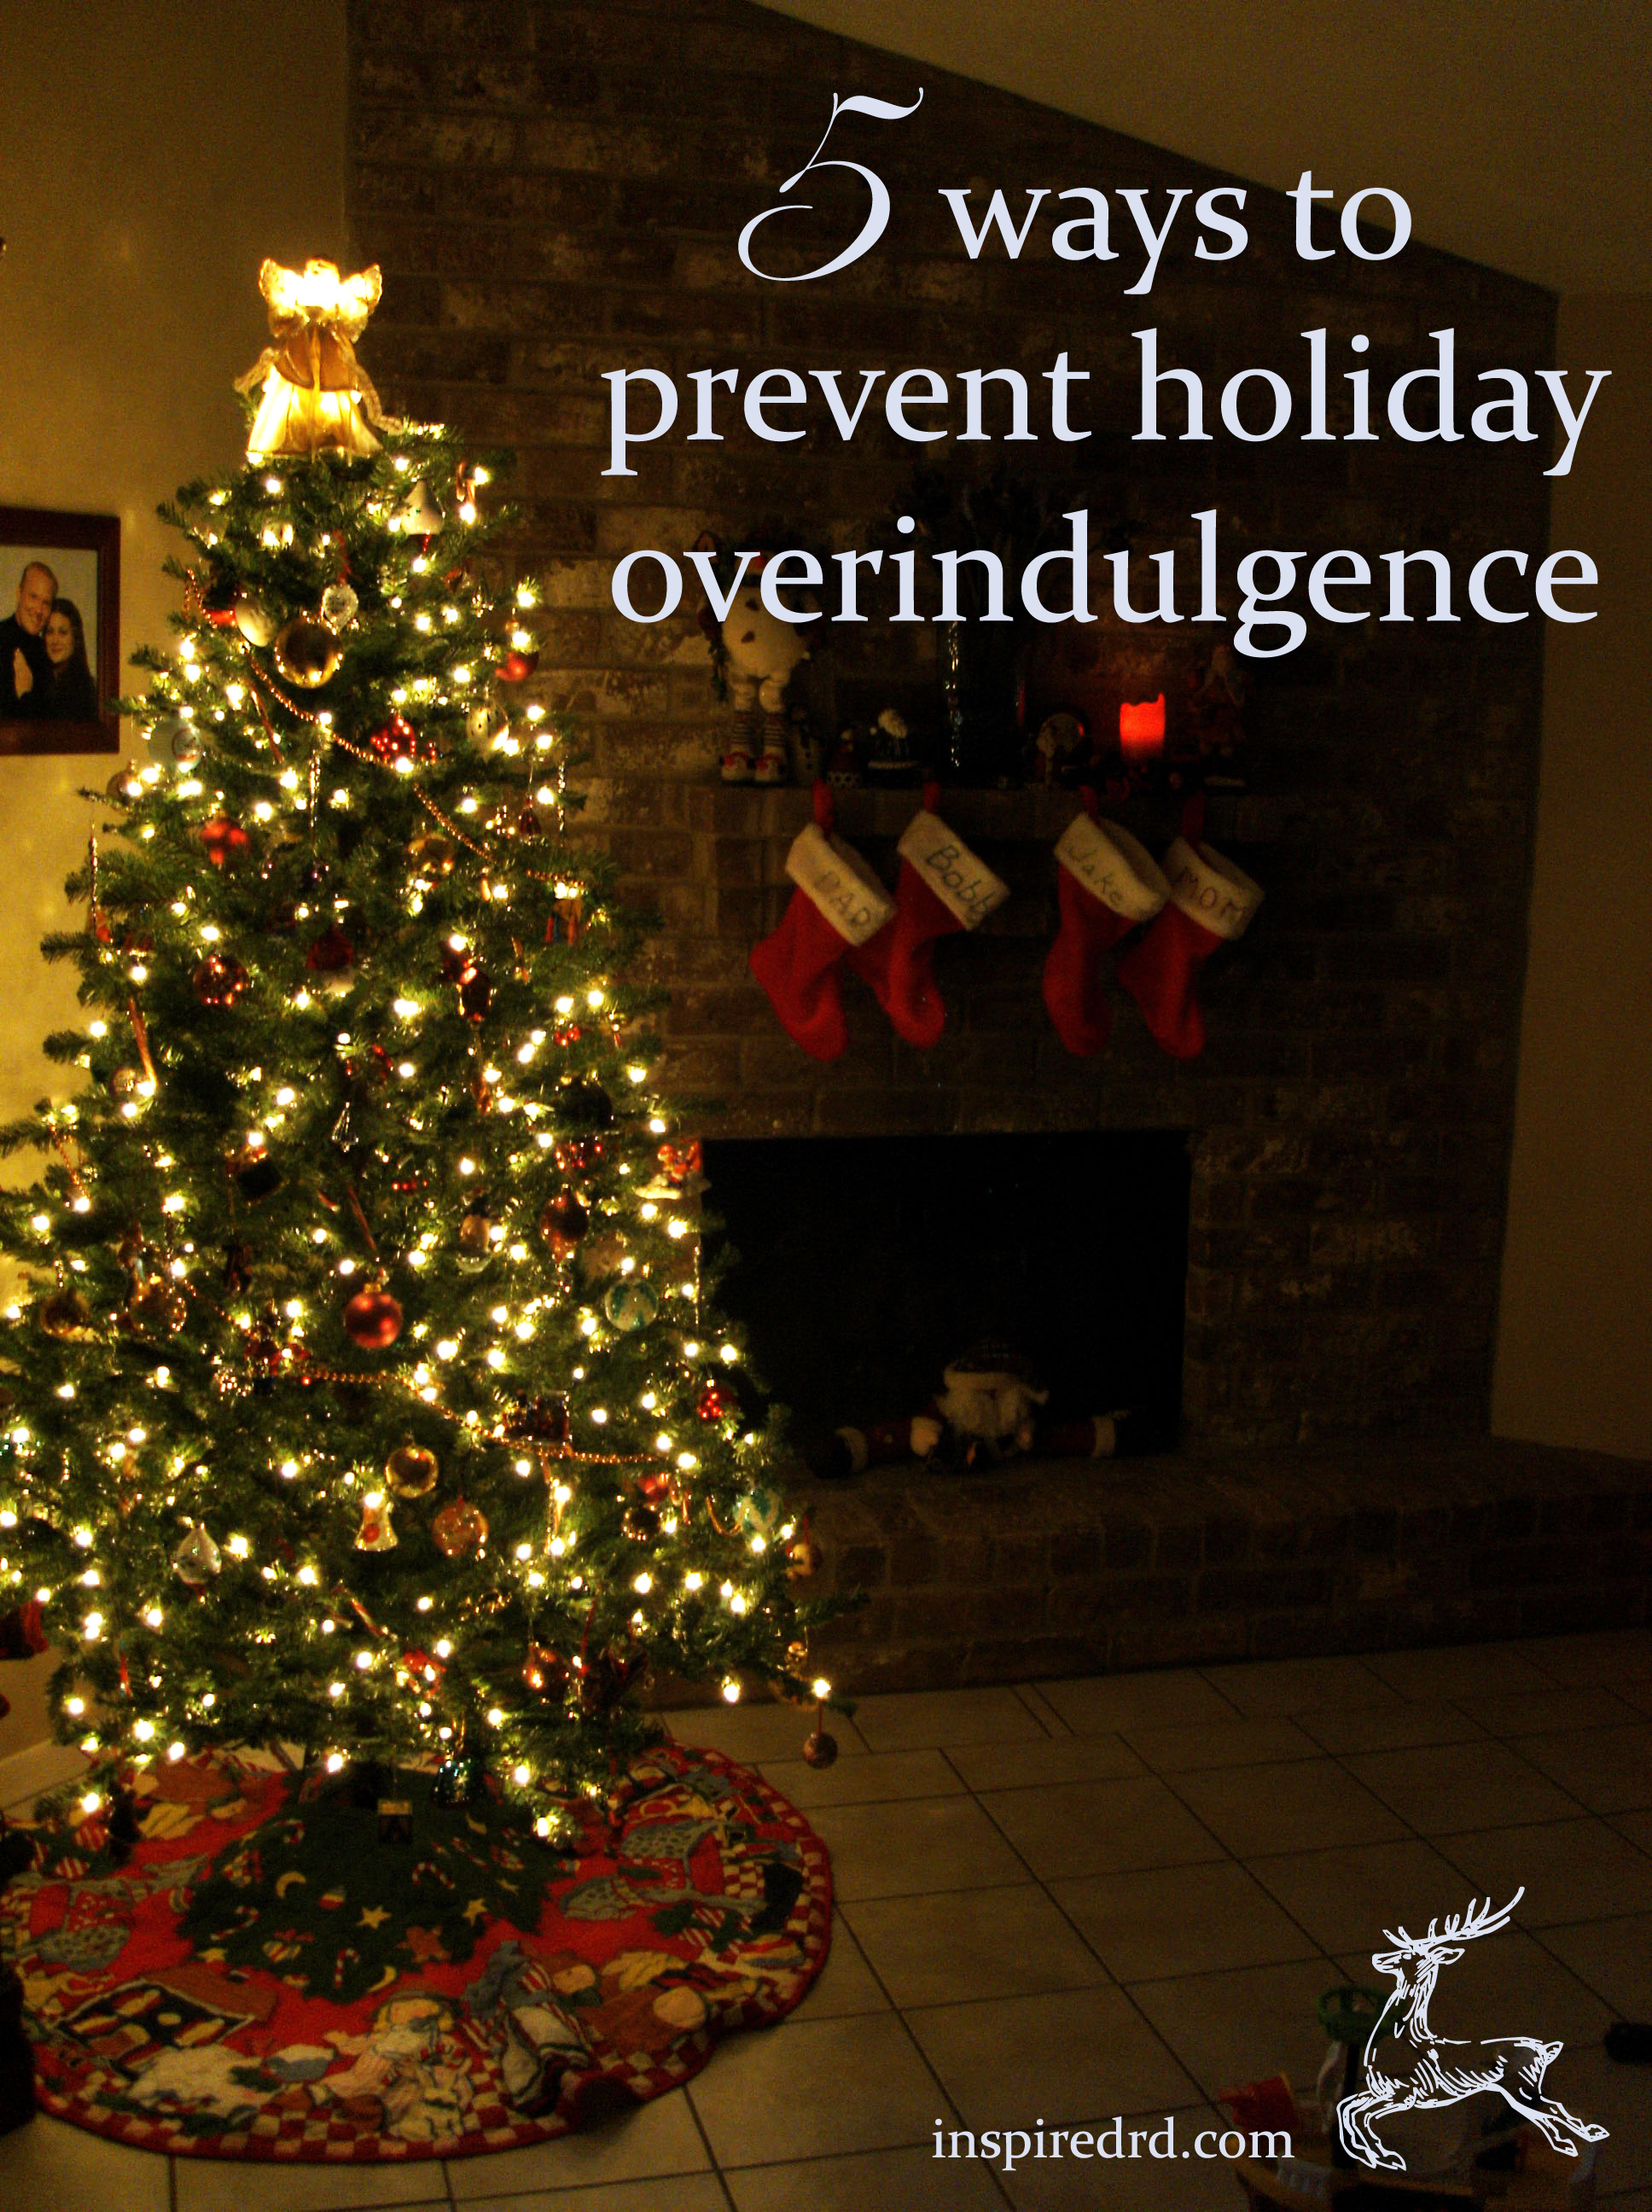 5 ways to prevent holiday overindulgence (hint: Make a plan and start now!) inspiredrd.com